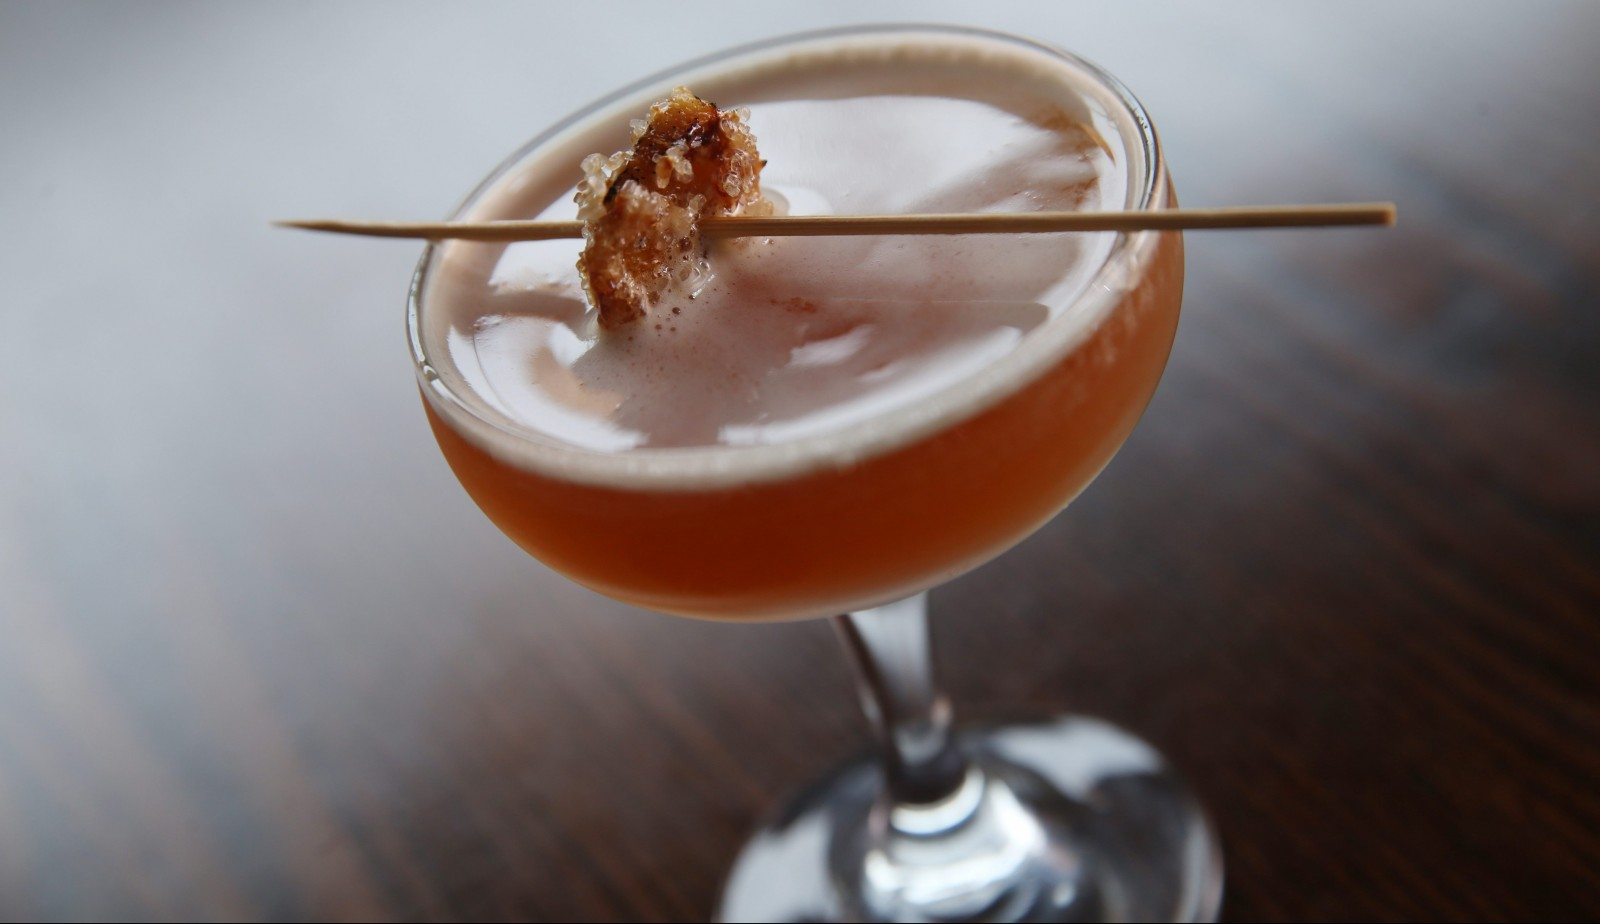 Craft cocktails became a lot more popular in Buffalo over the past decade. (Sharon Cantillon/Buffalo News)